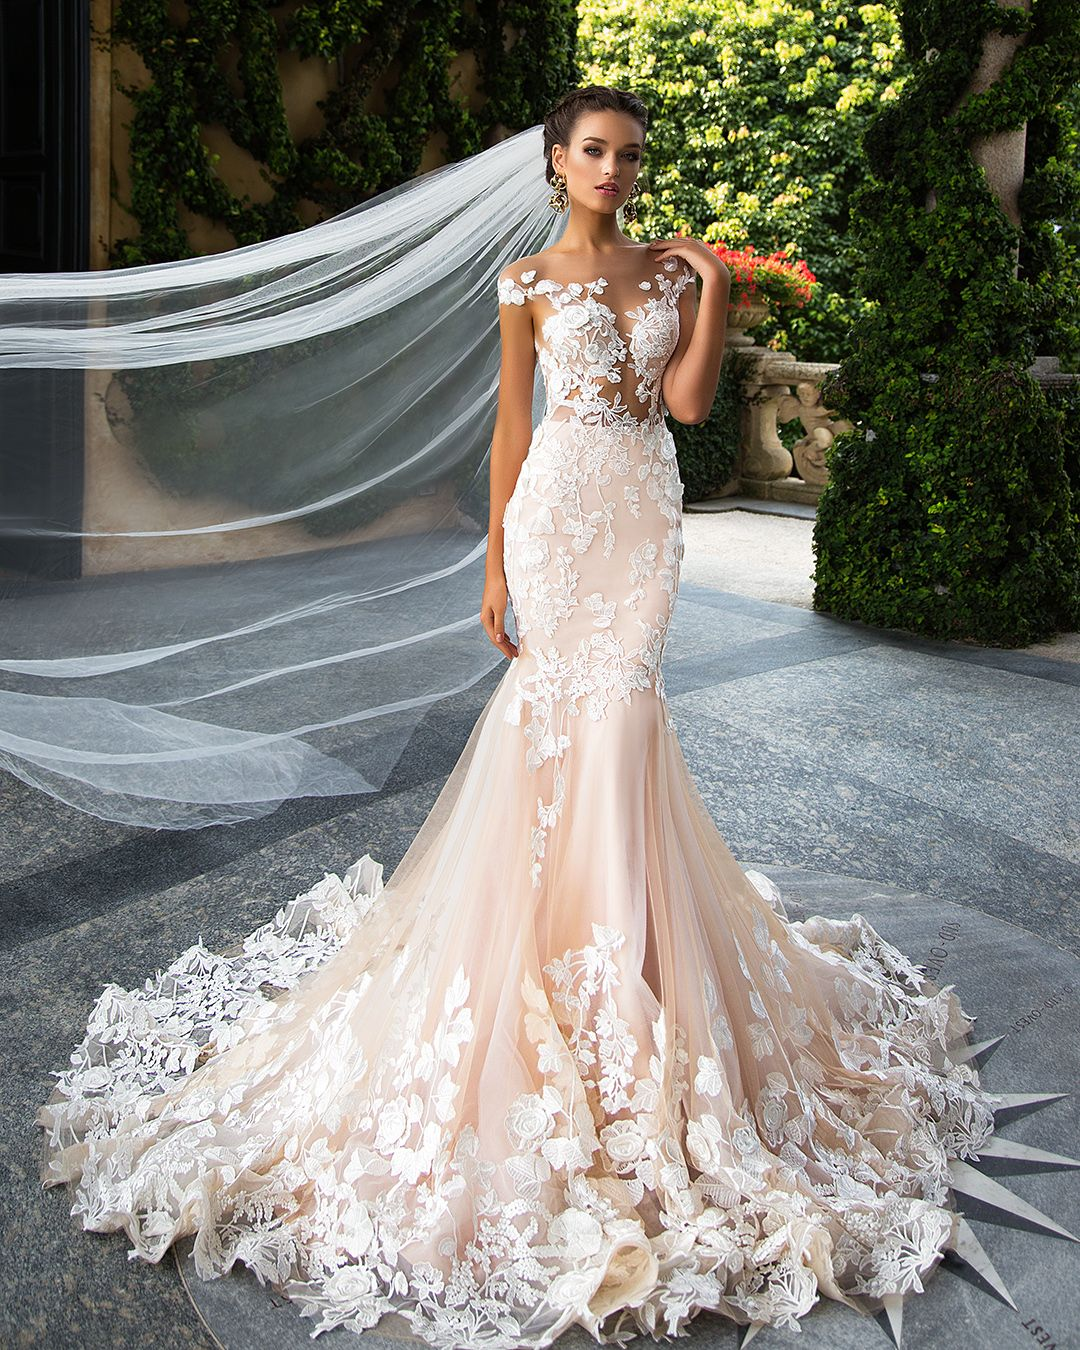 Price Tracker And History Of Romantic Tulle Scoop Neckline Backless Mermaid Wedding Dress Appliques Flowers Lace Natural Waistline Sleeveless Bride Dresses